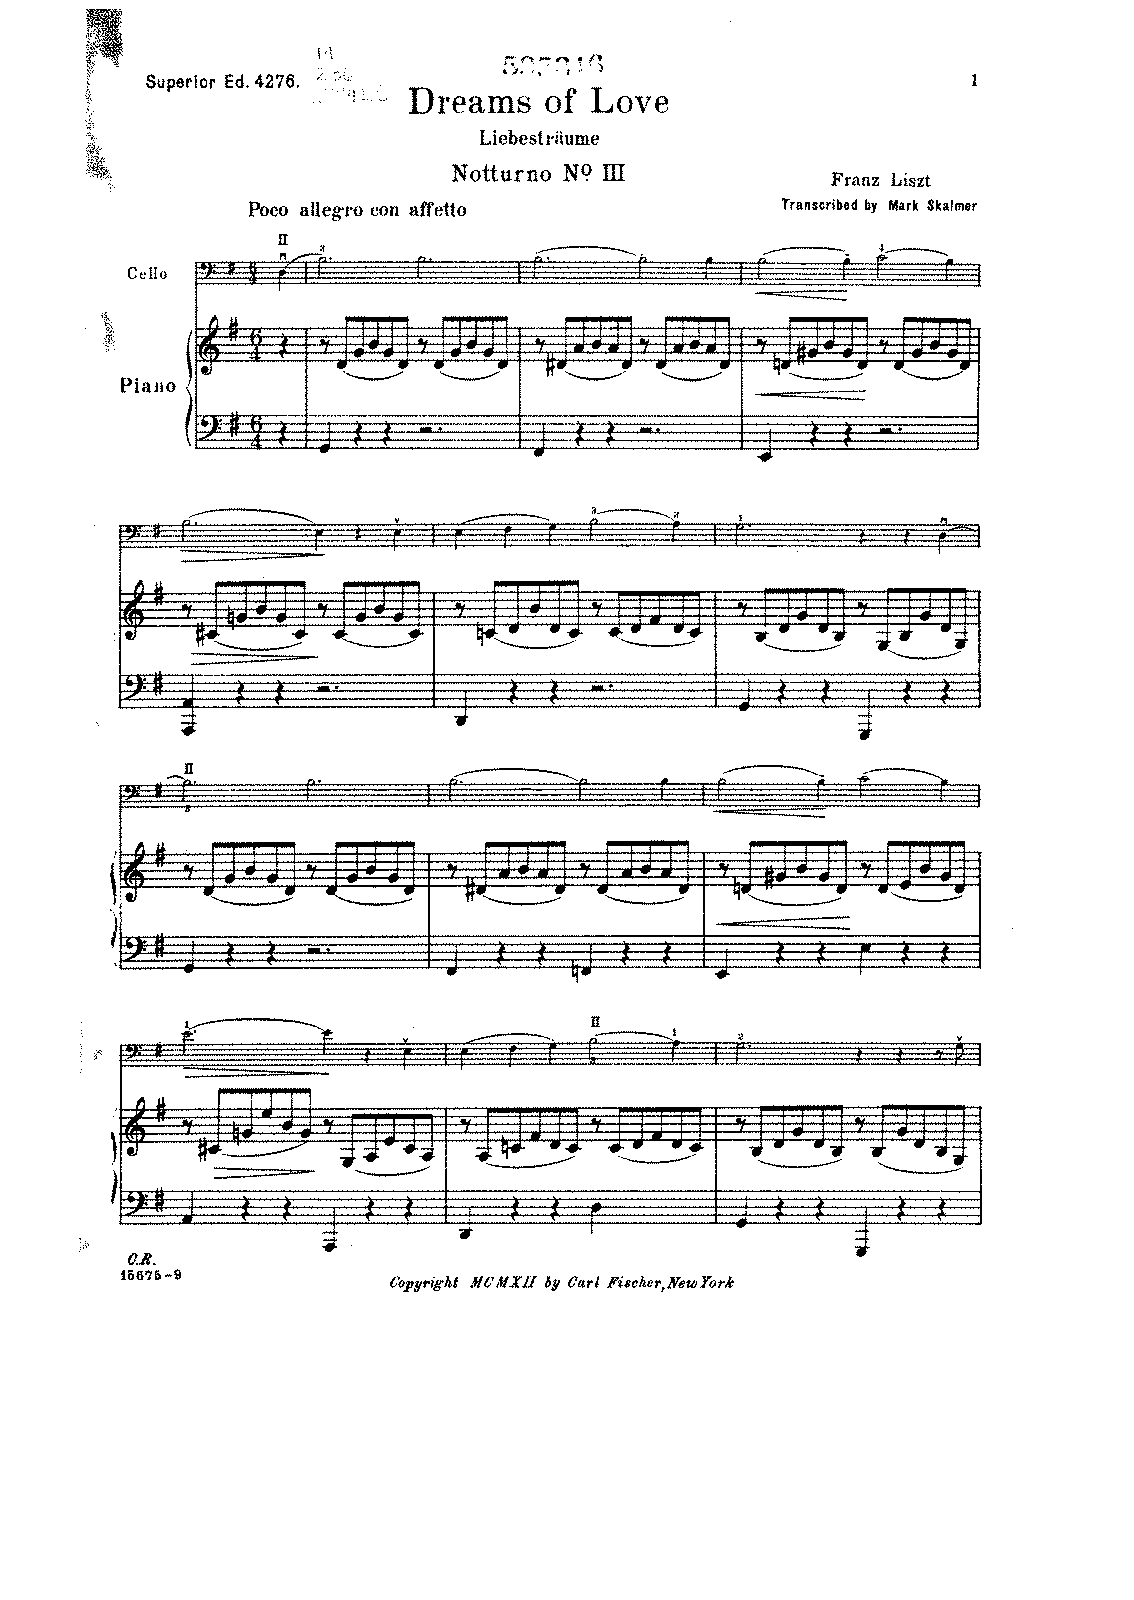 PMLP02598-Liszt - Liebestraum (Dream of love) Notturno NoIII (S.4276) (Skalmer) for Cello and Piano score.pdf